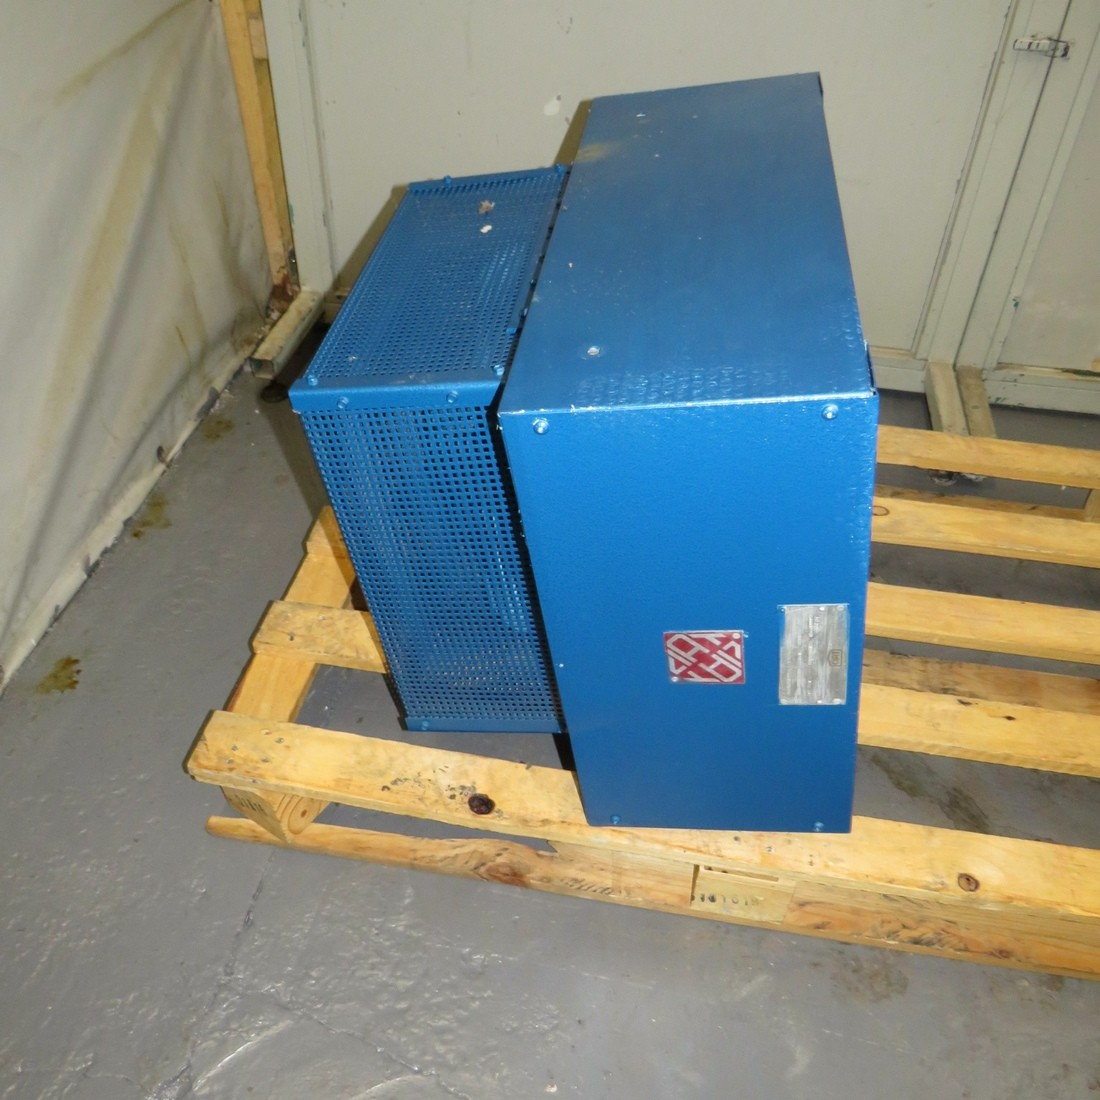 R1A767 Mild steel CIAT Heating unit electric - Type H9350 - Hp17.3